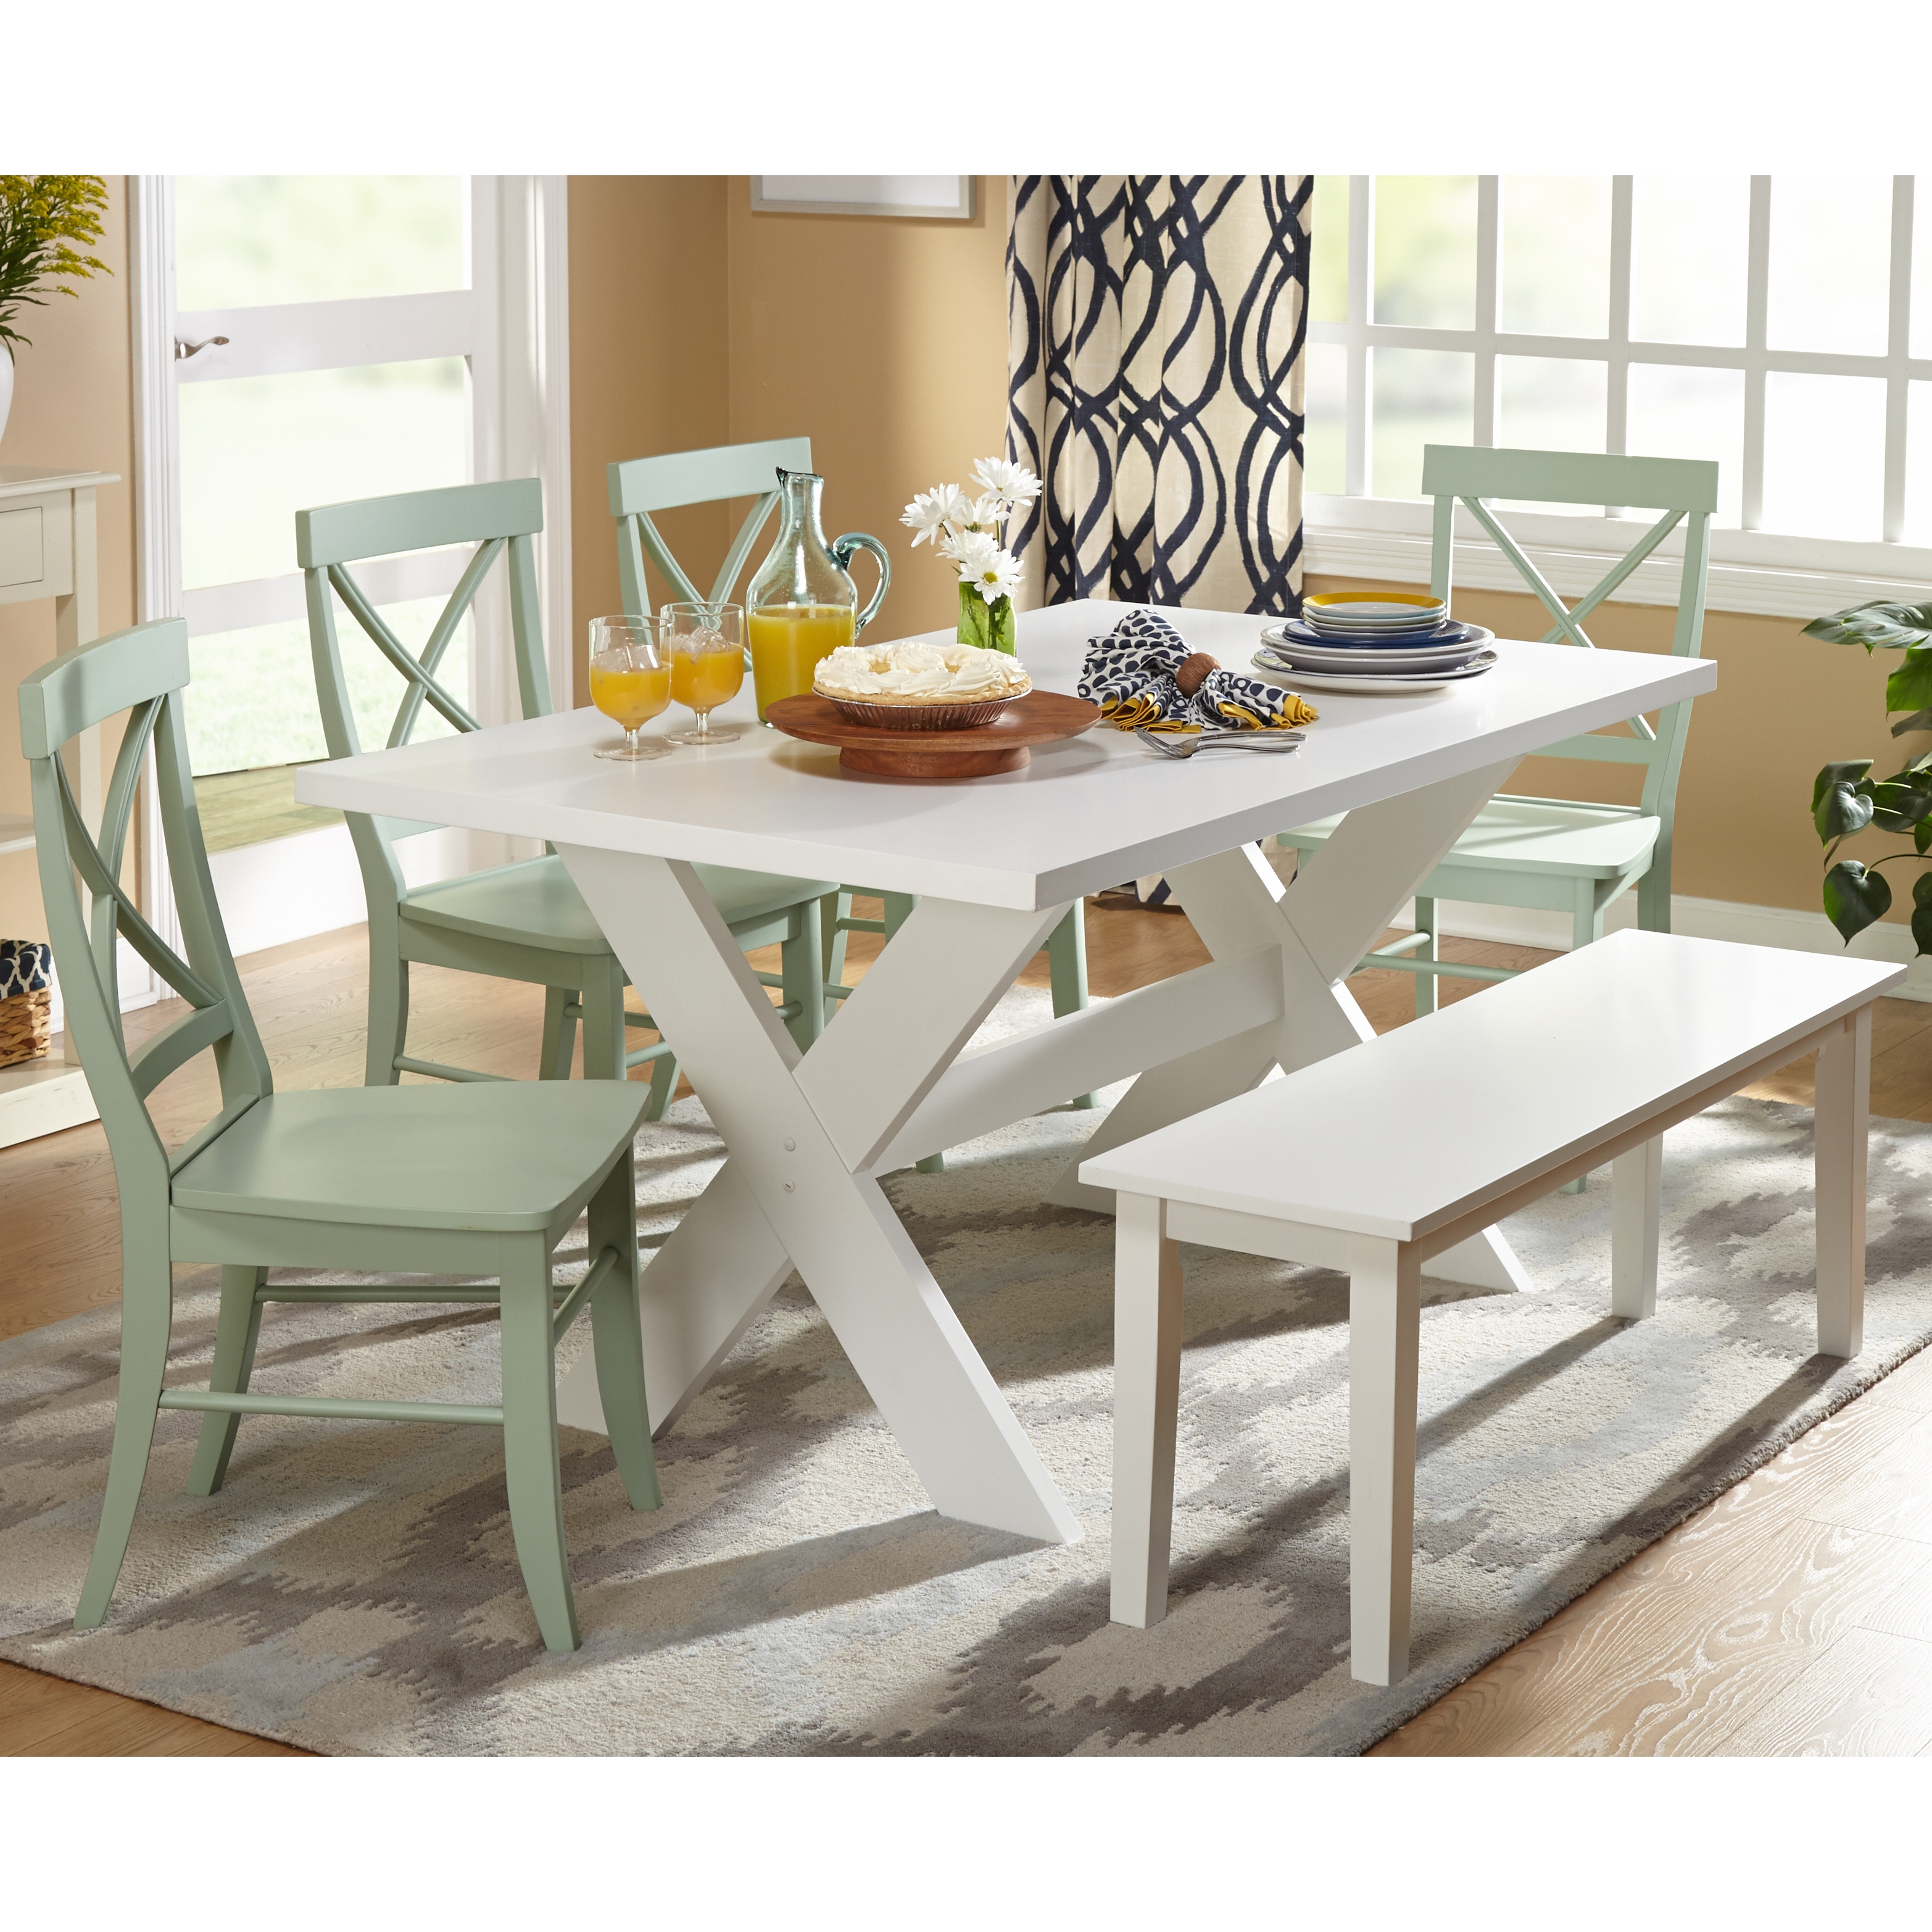 Dining room table bench White Product Image Simple Living 6piece Sumner Dining Set With Dining Bench Walmart Dining Sets With Benches Walmartcom